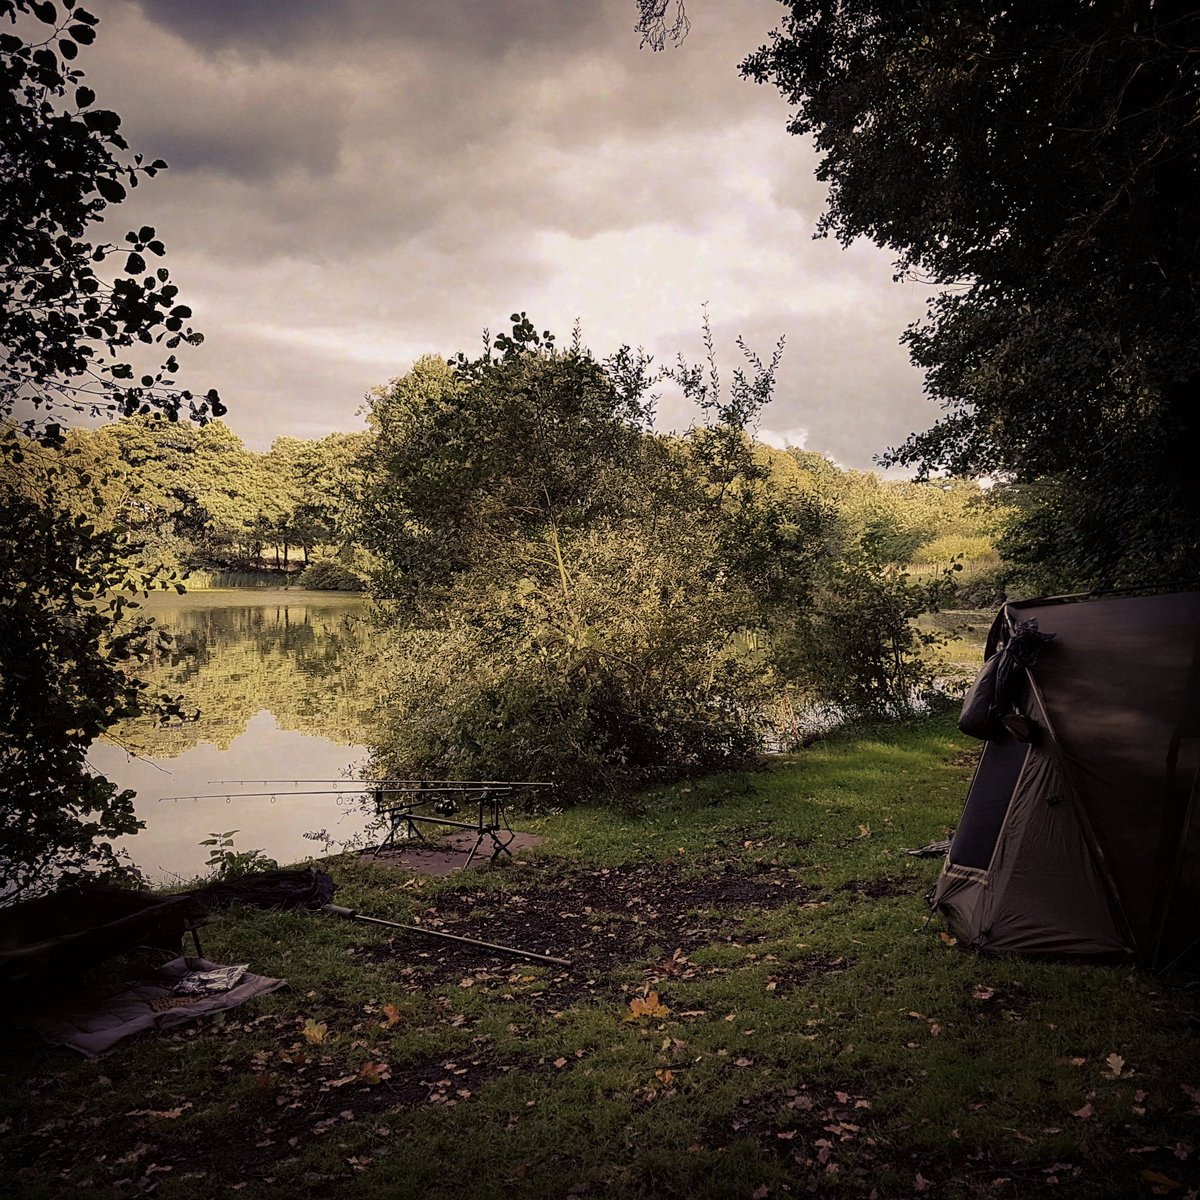 Traps set #CARPFISHING #carpy #MainlineBaits #givingthehelirigago #tightlines #fingerscrossed https: